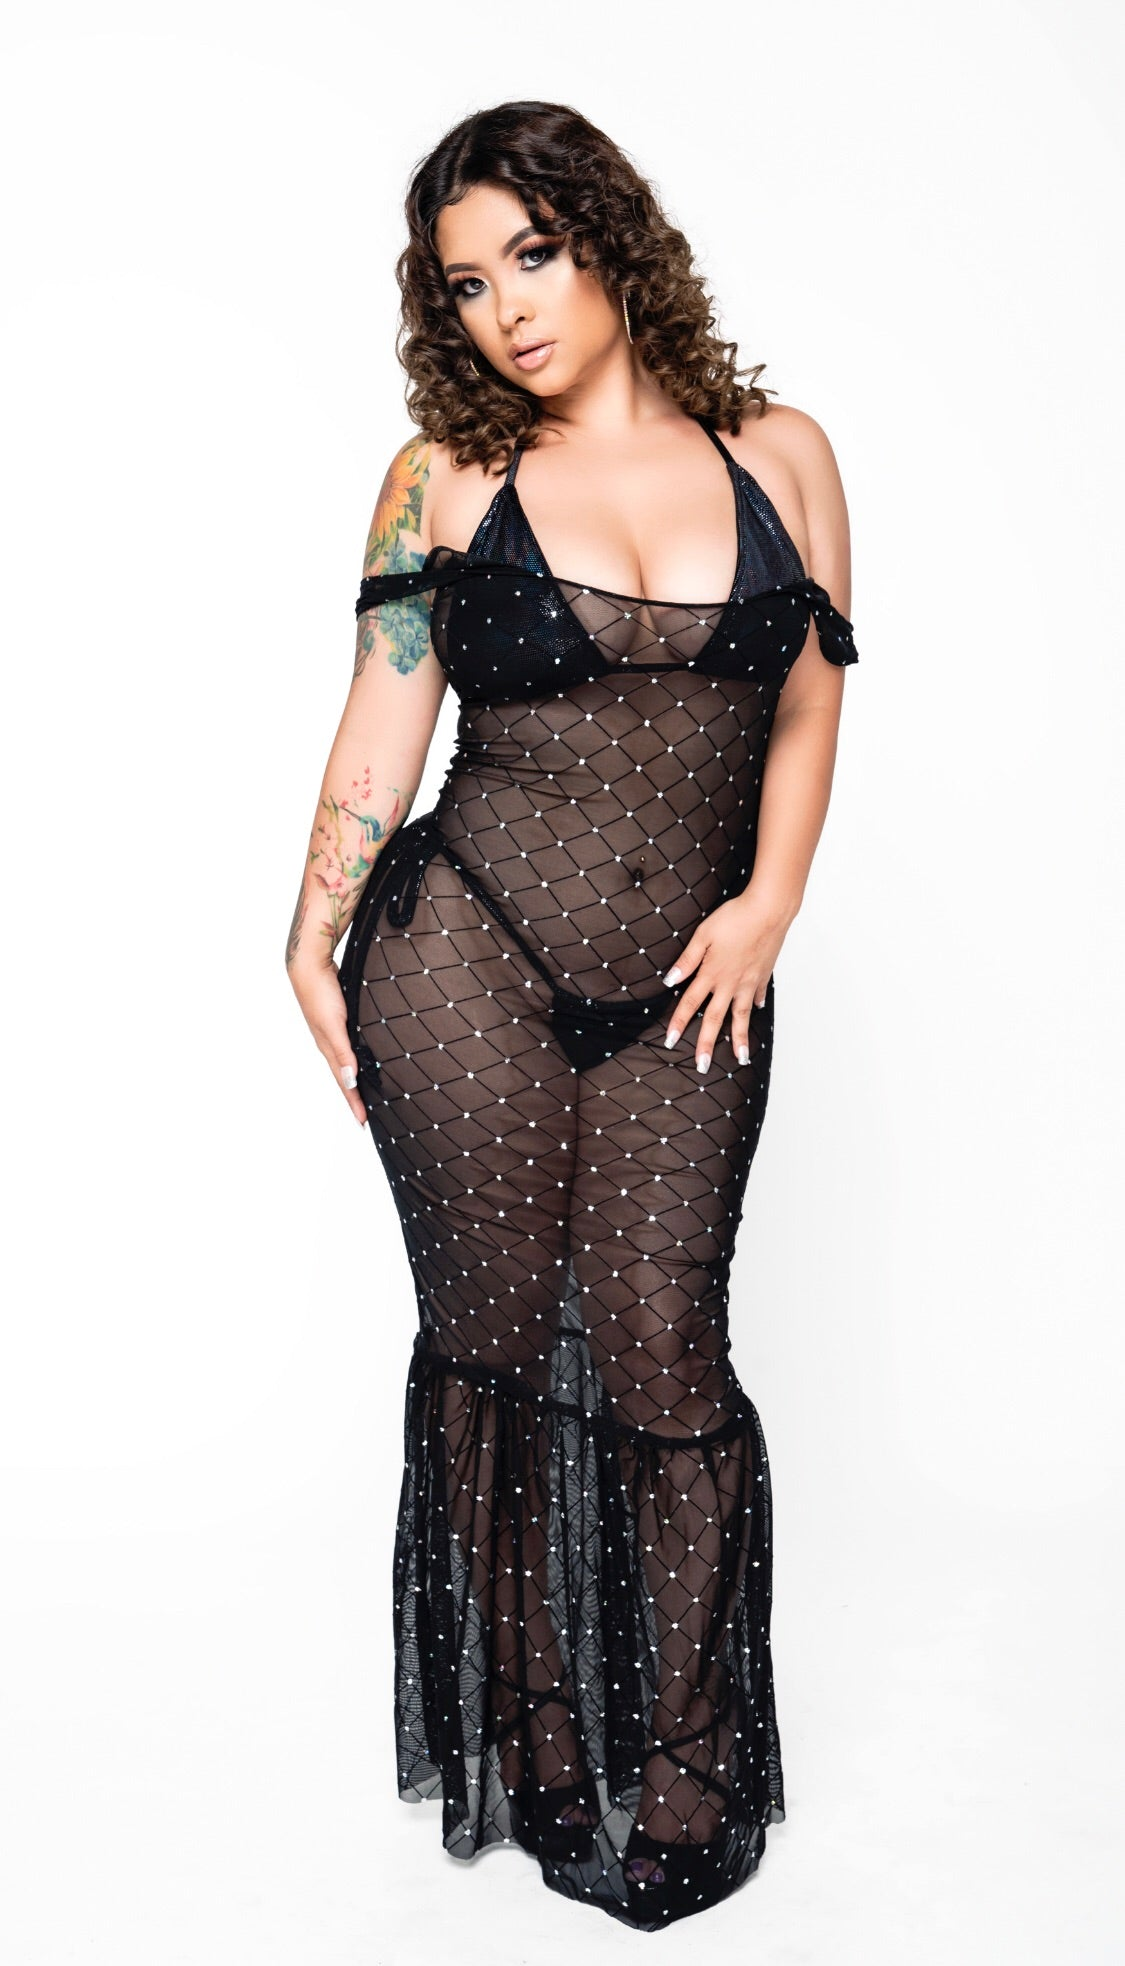 Spoiled In Sparkles Sheer Mermaid Dress - Black